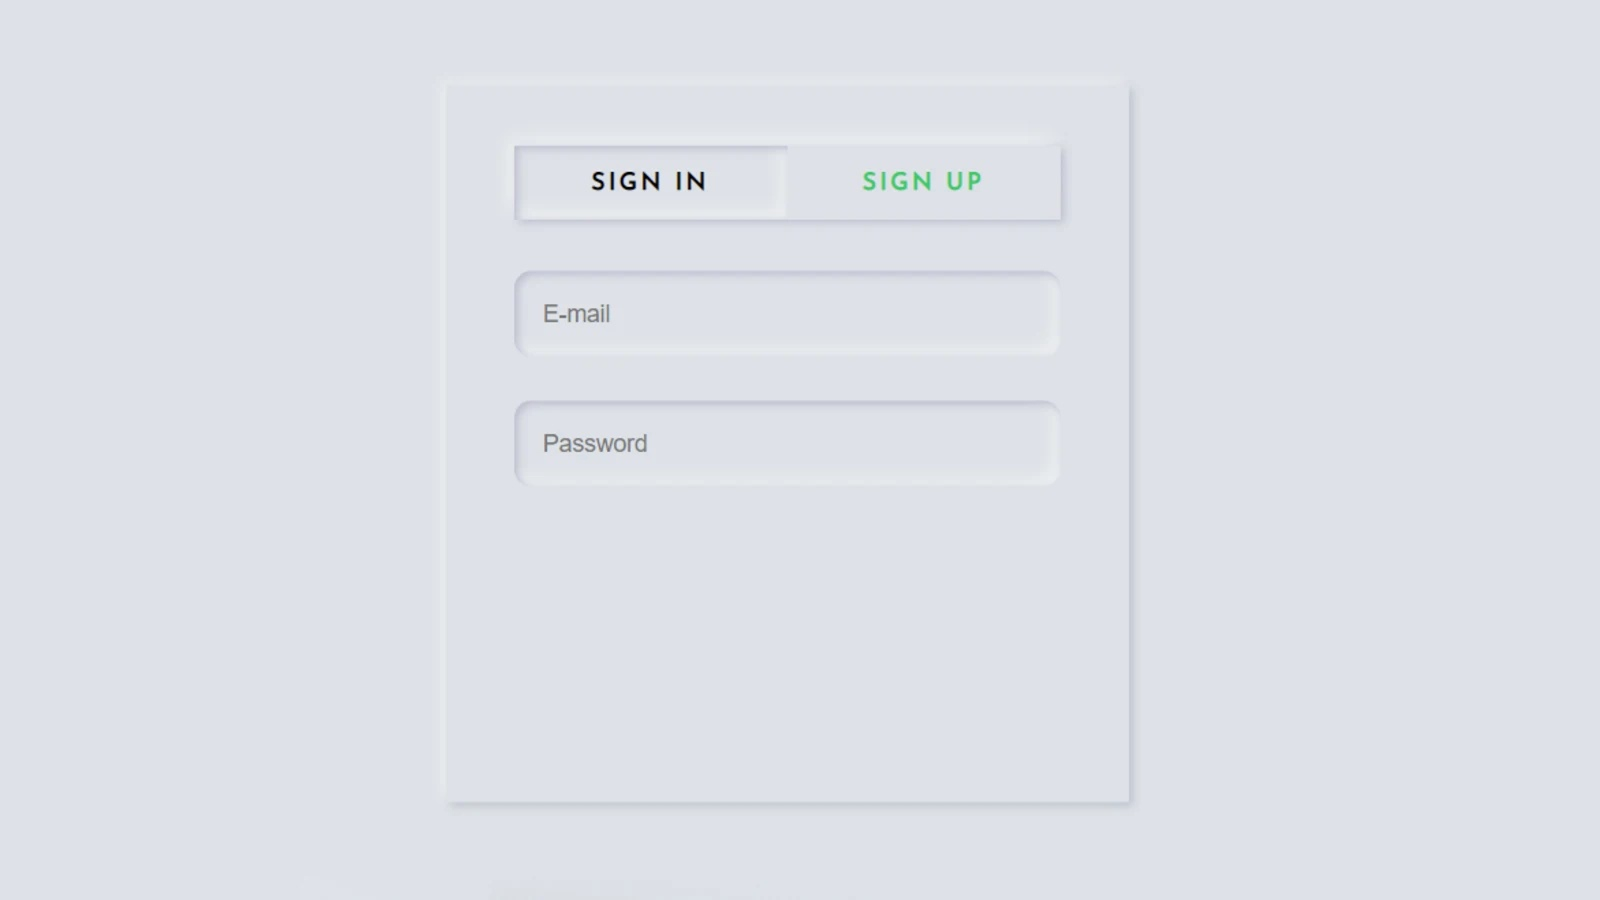 Create a place to input emails and passwords